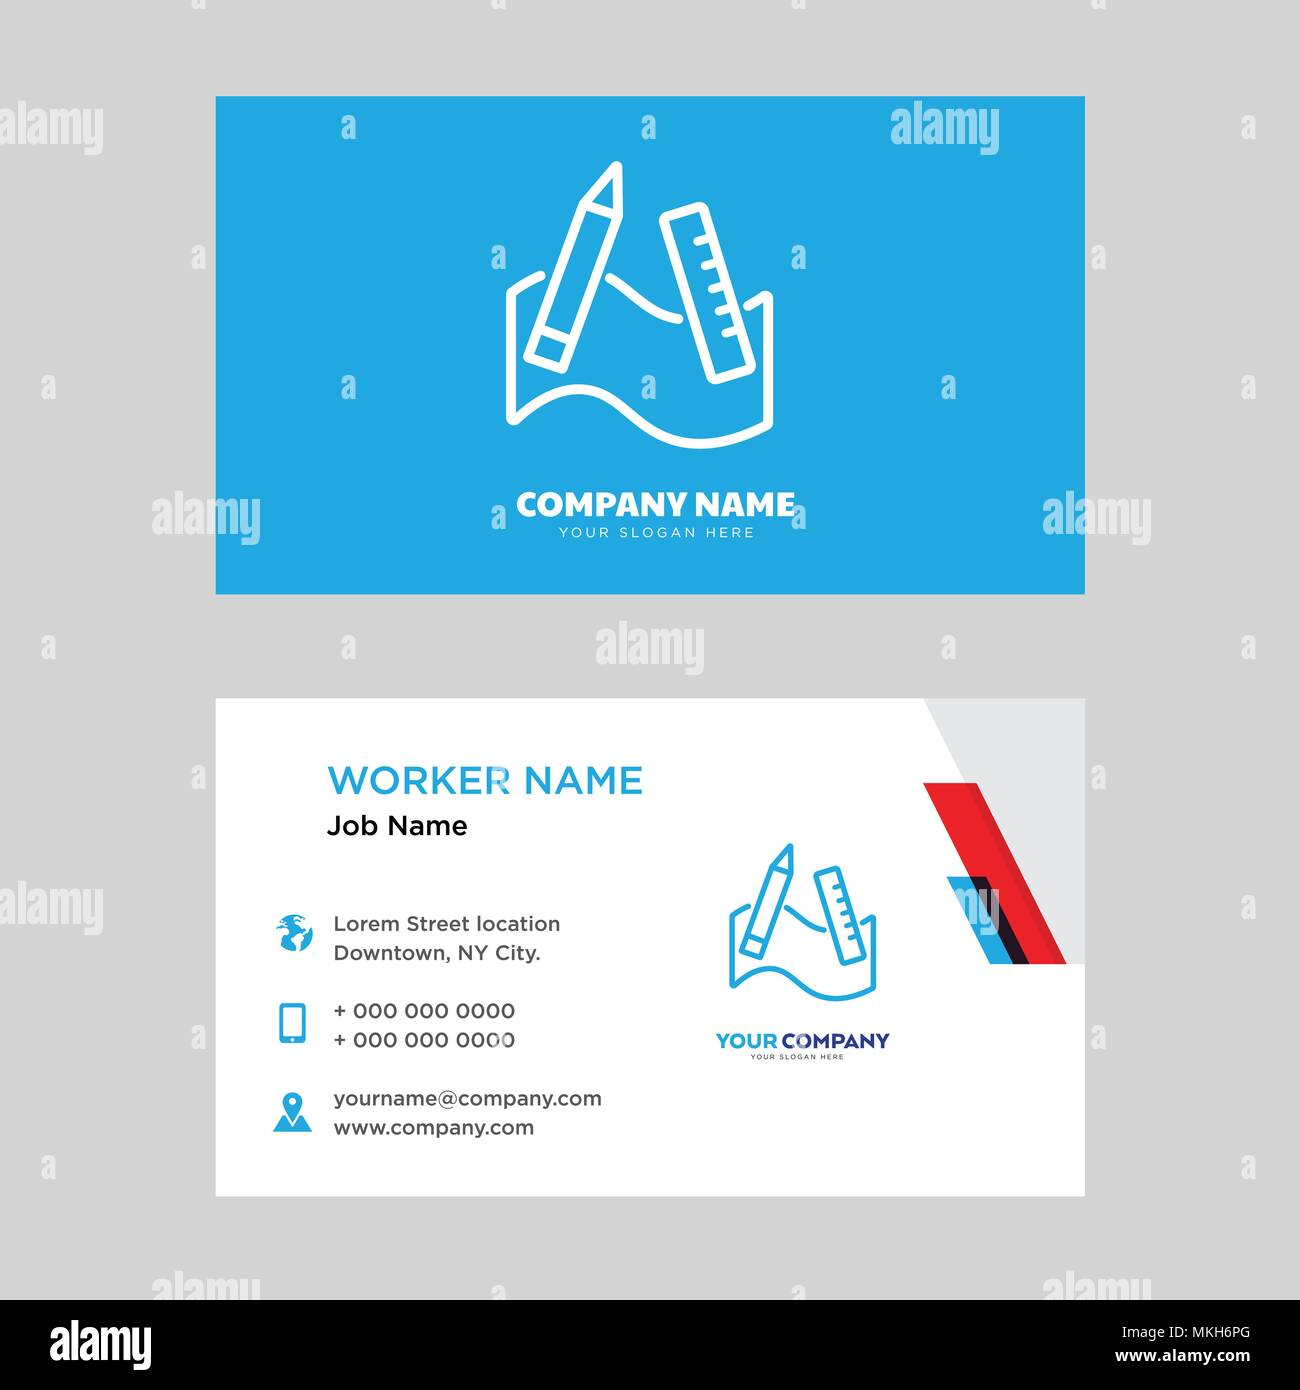 Graphic Tool Business Card Design Template Visiting For Your